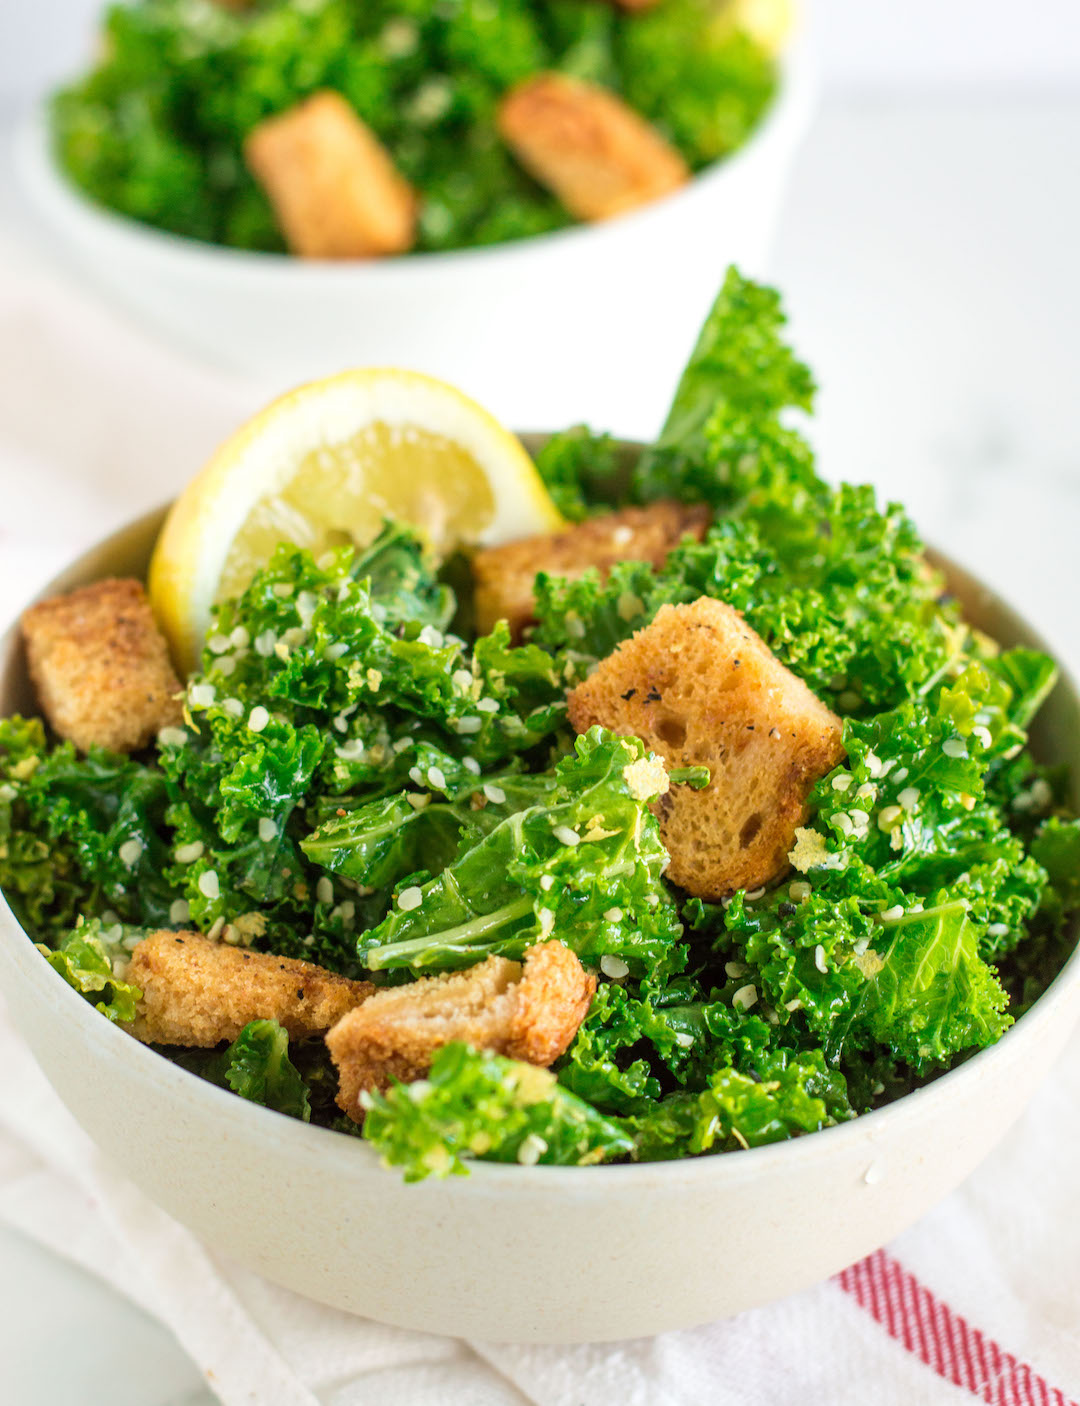 Vegan Kale Caesar Salad with Homemade Croutons - NOURISHED. the blog